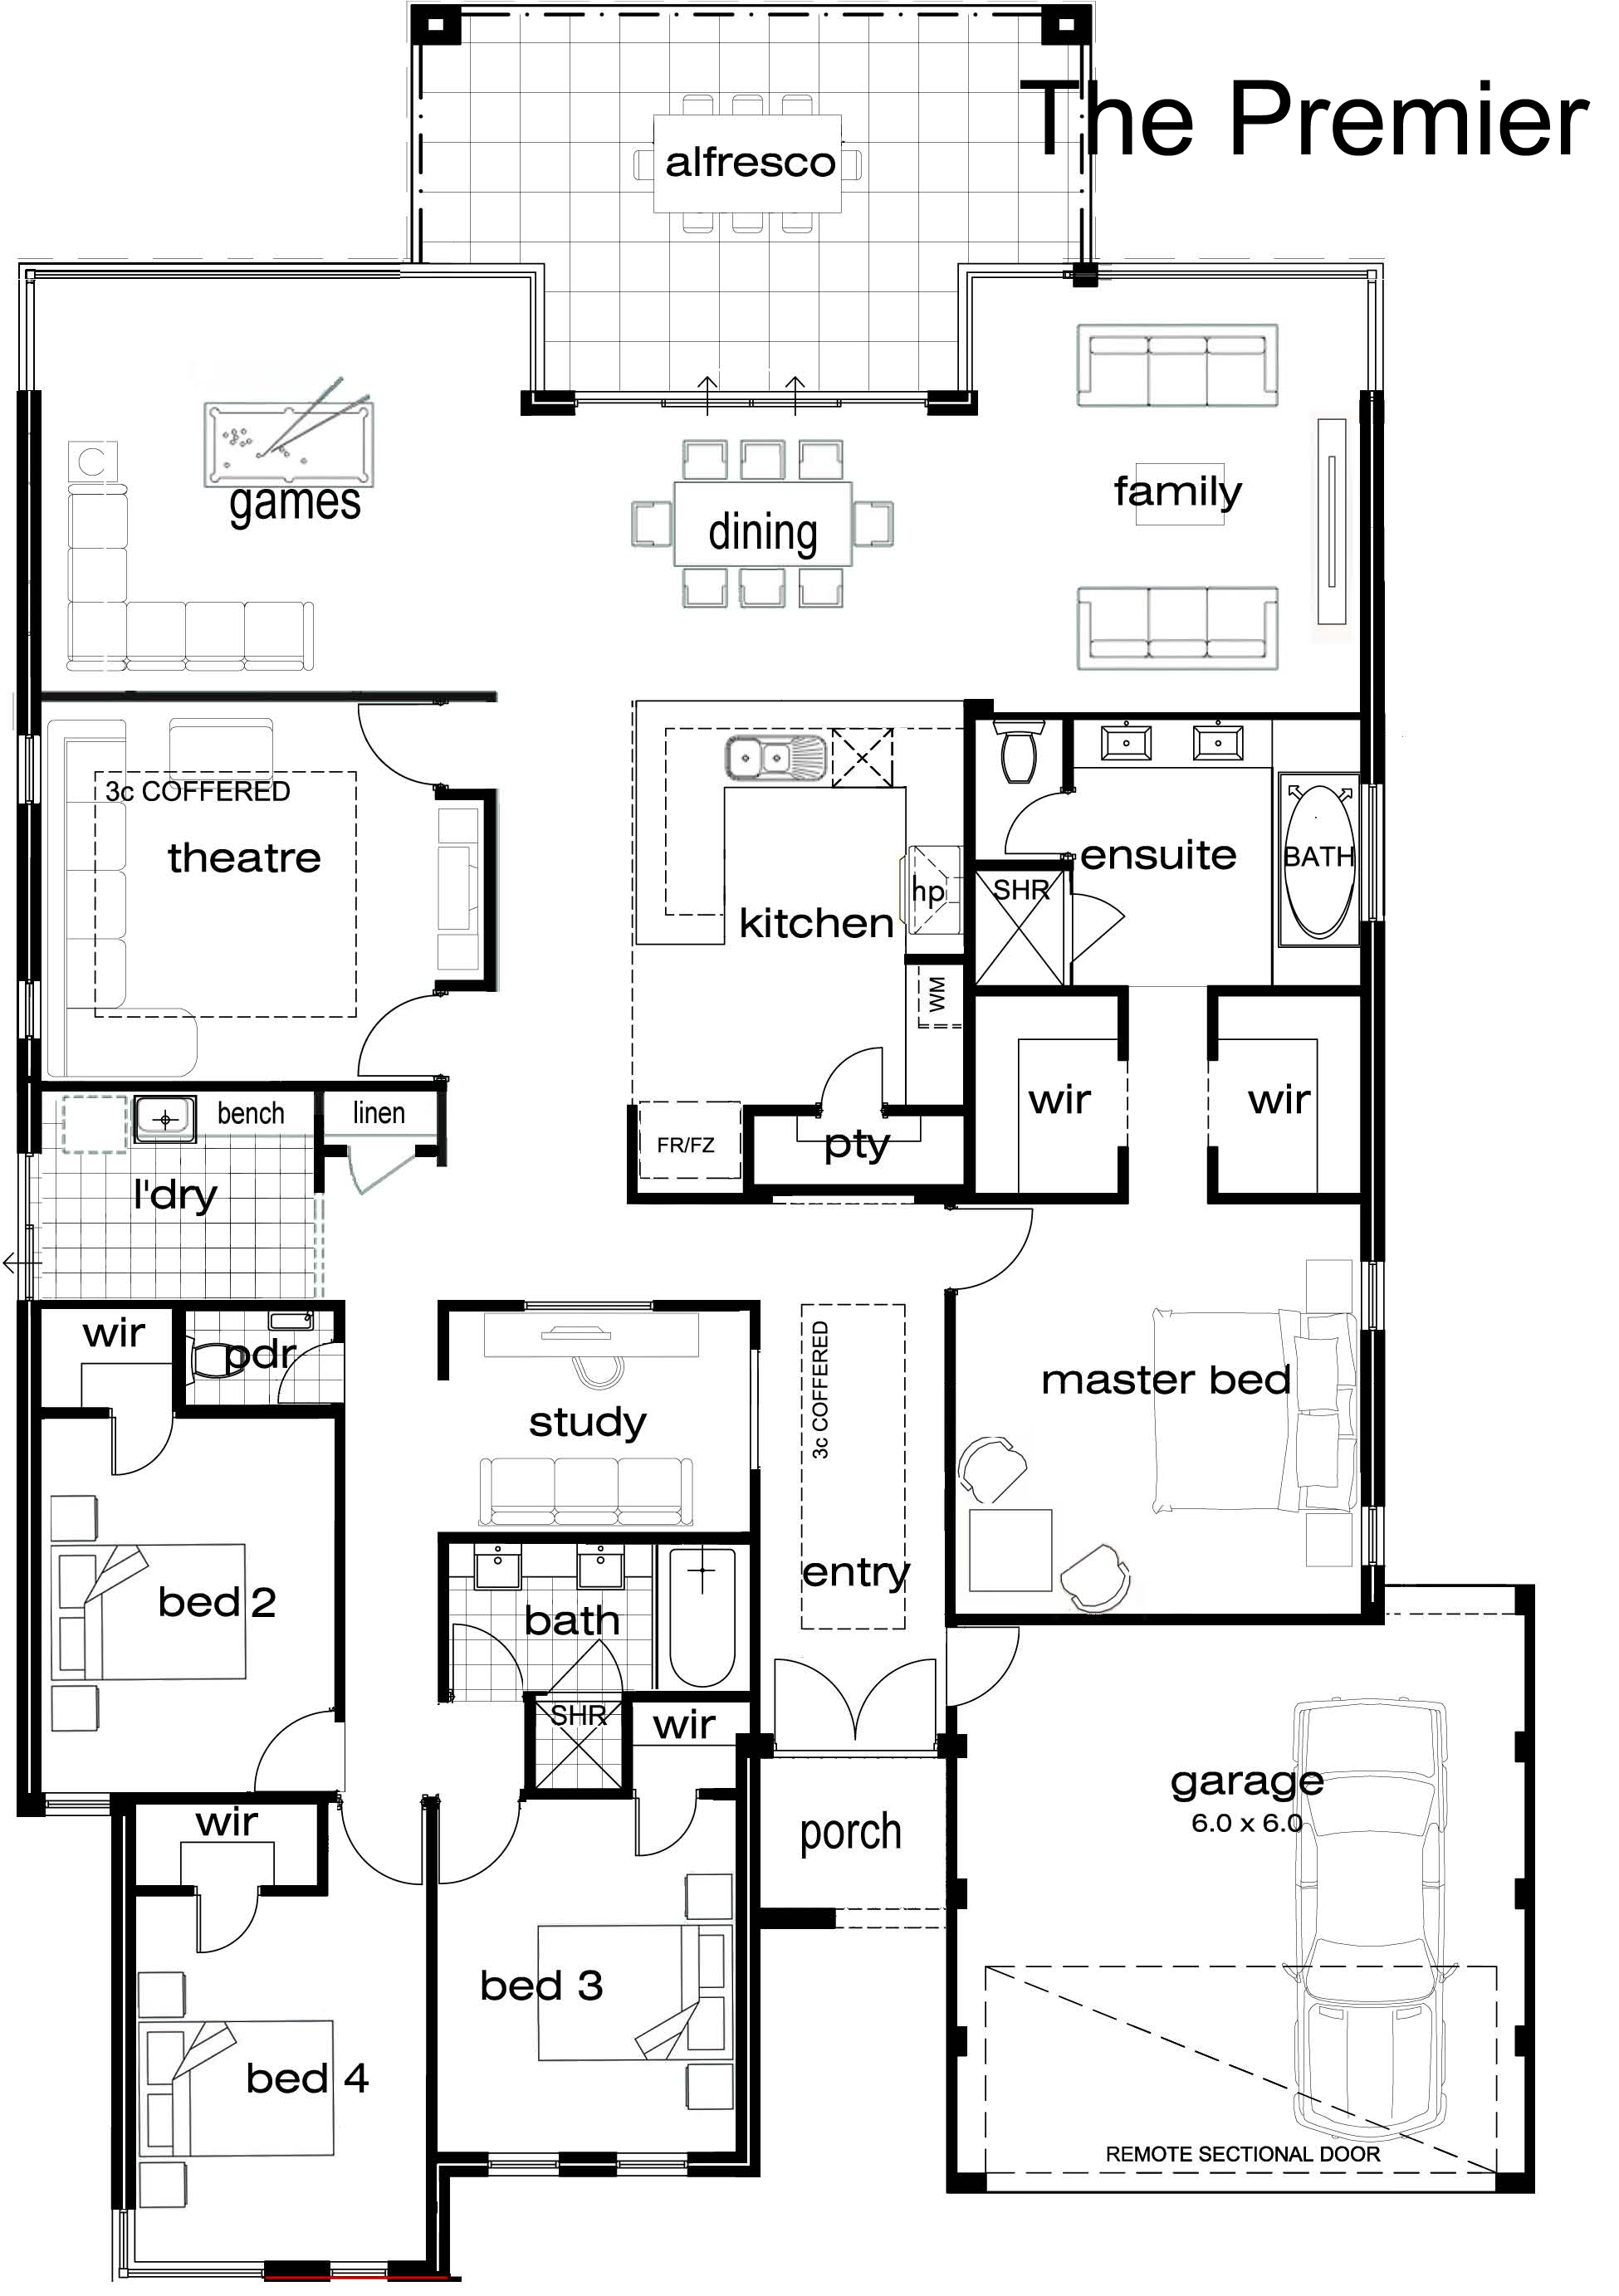 Floor Plan 5 Bedroom Single Story House Plans Bedroom At Real Single Story House Floor Plans House Plans One Story New House Plans